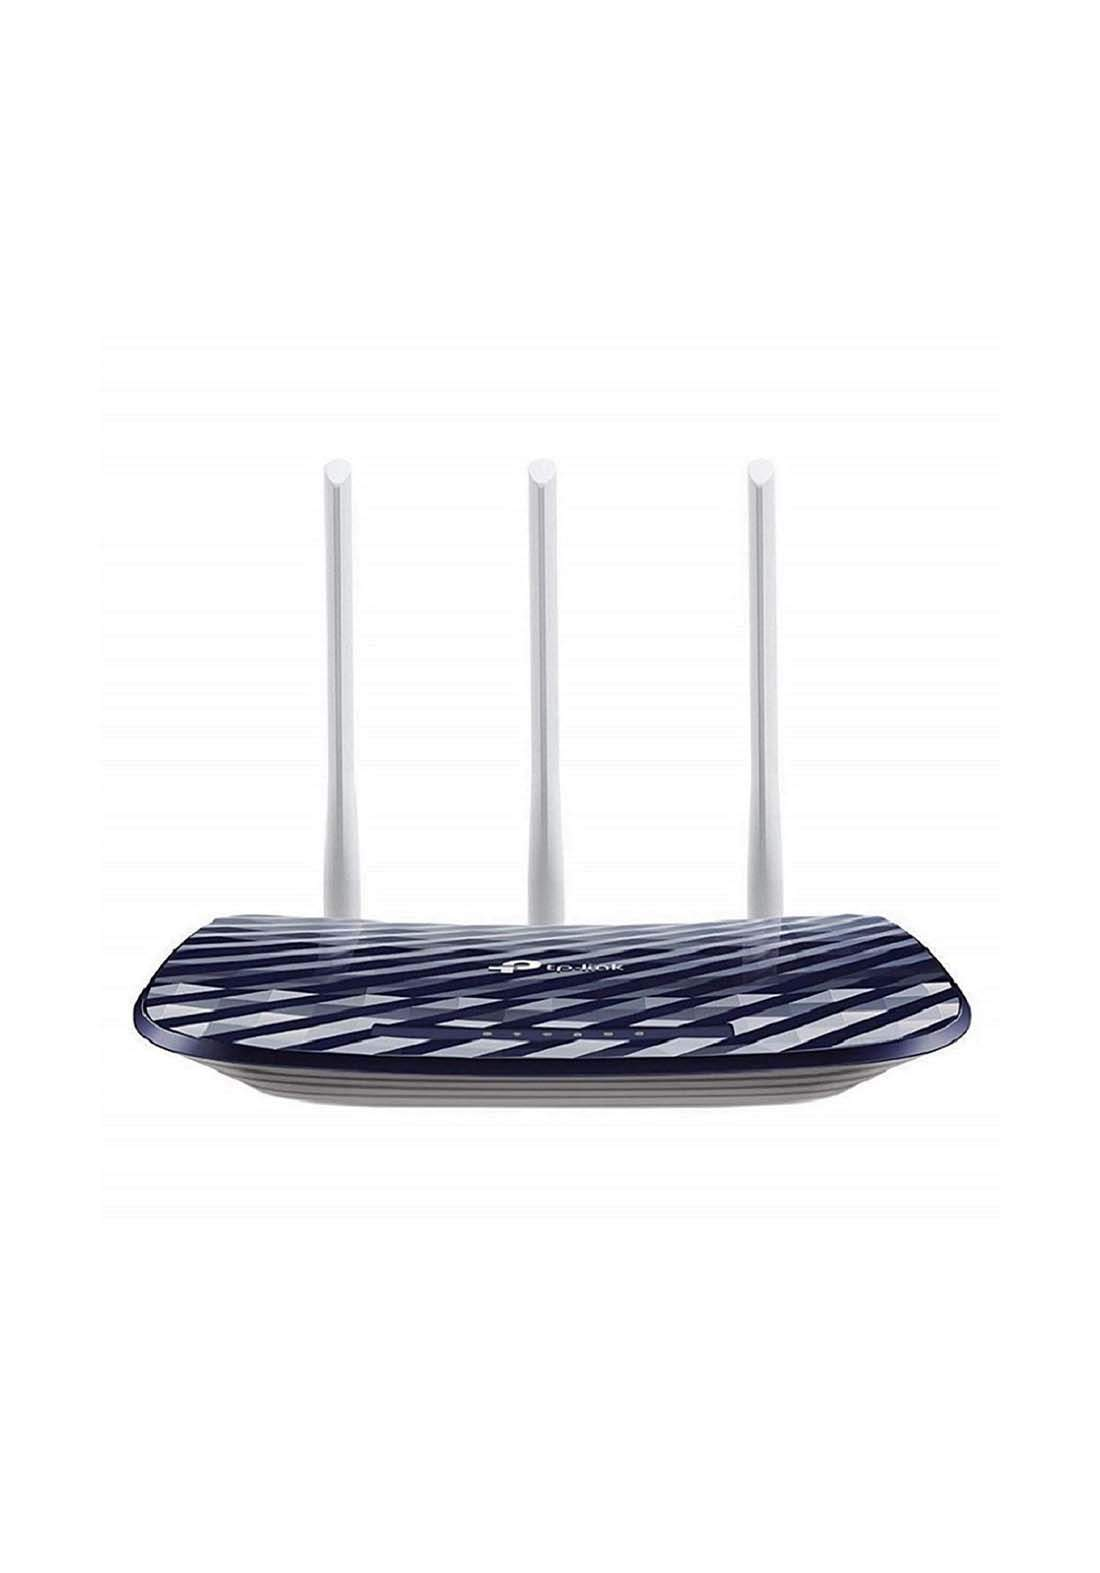 TP-Link  AC750 Dual Band Router - Blue